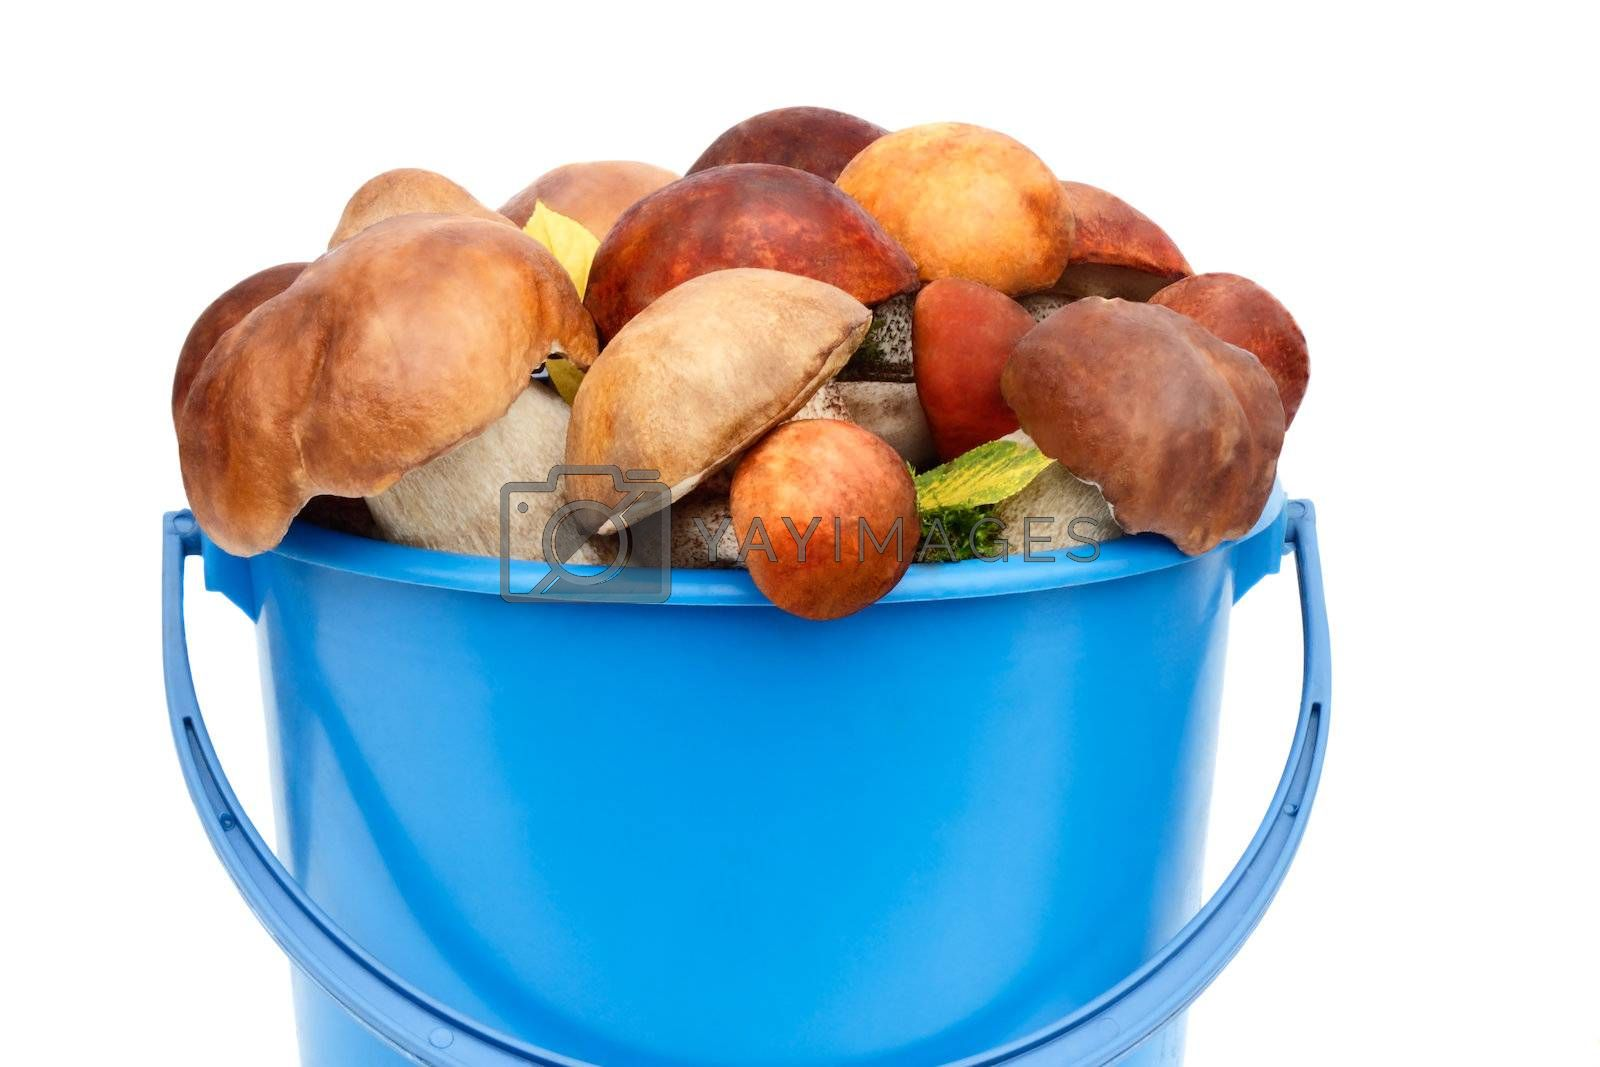 Mushrooms of different varieties are in the blue bucket. Presented on a white background.